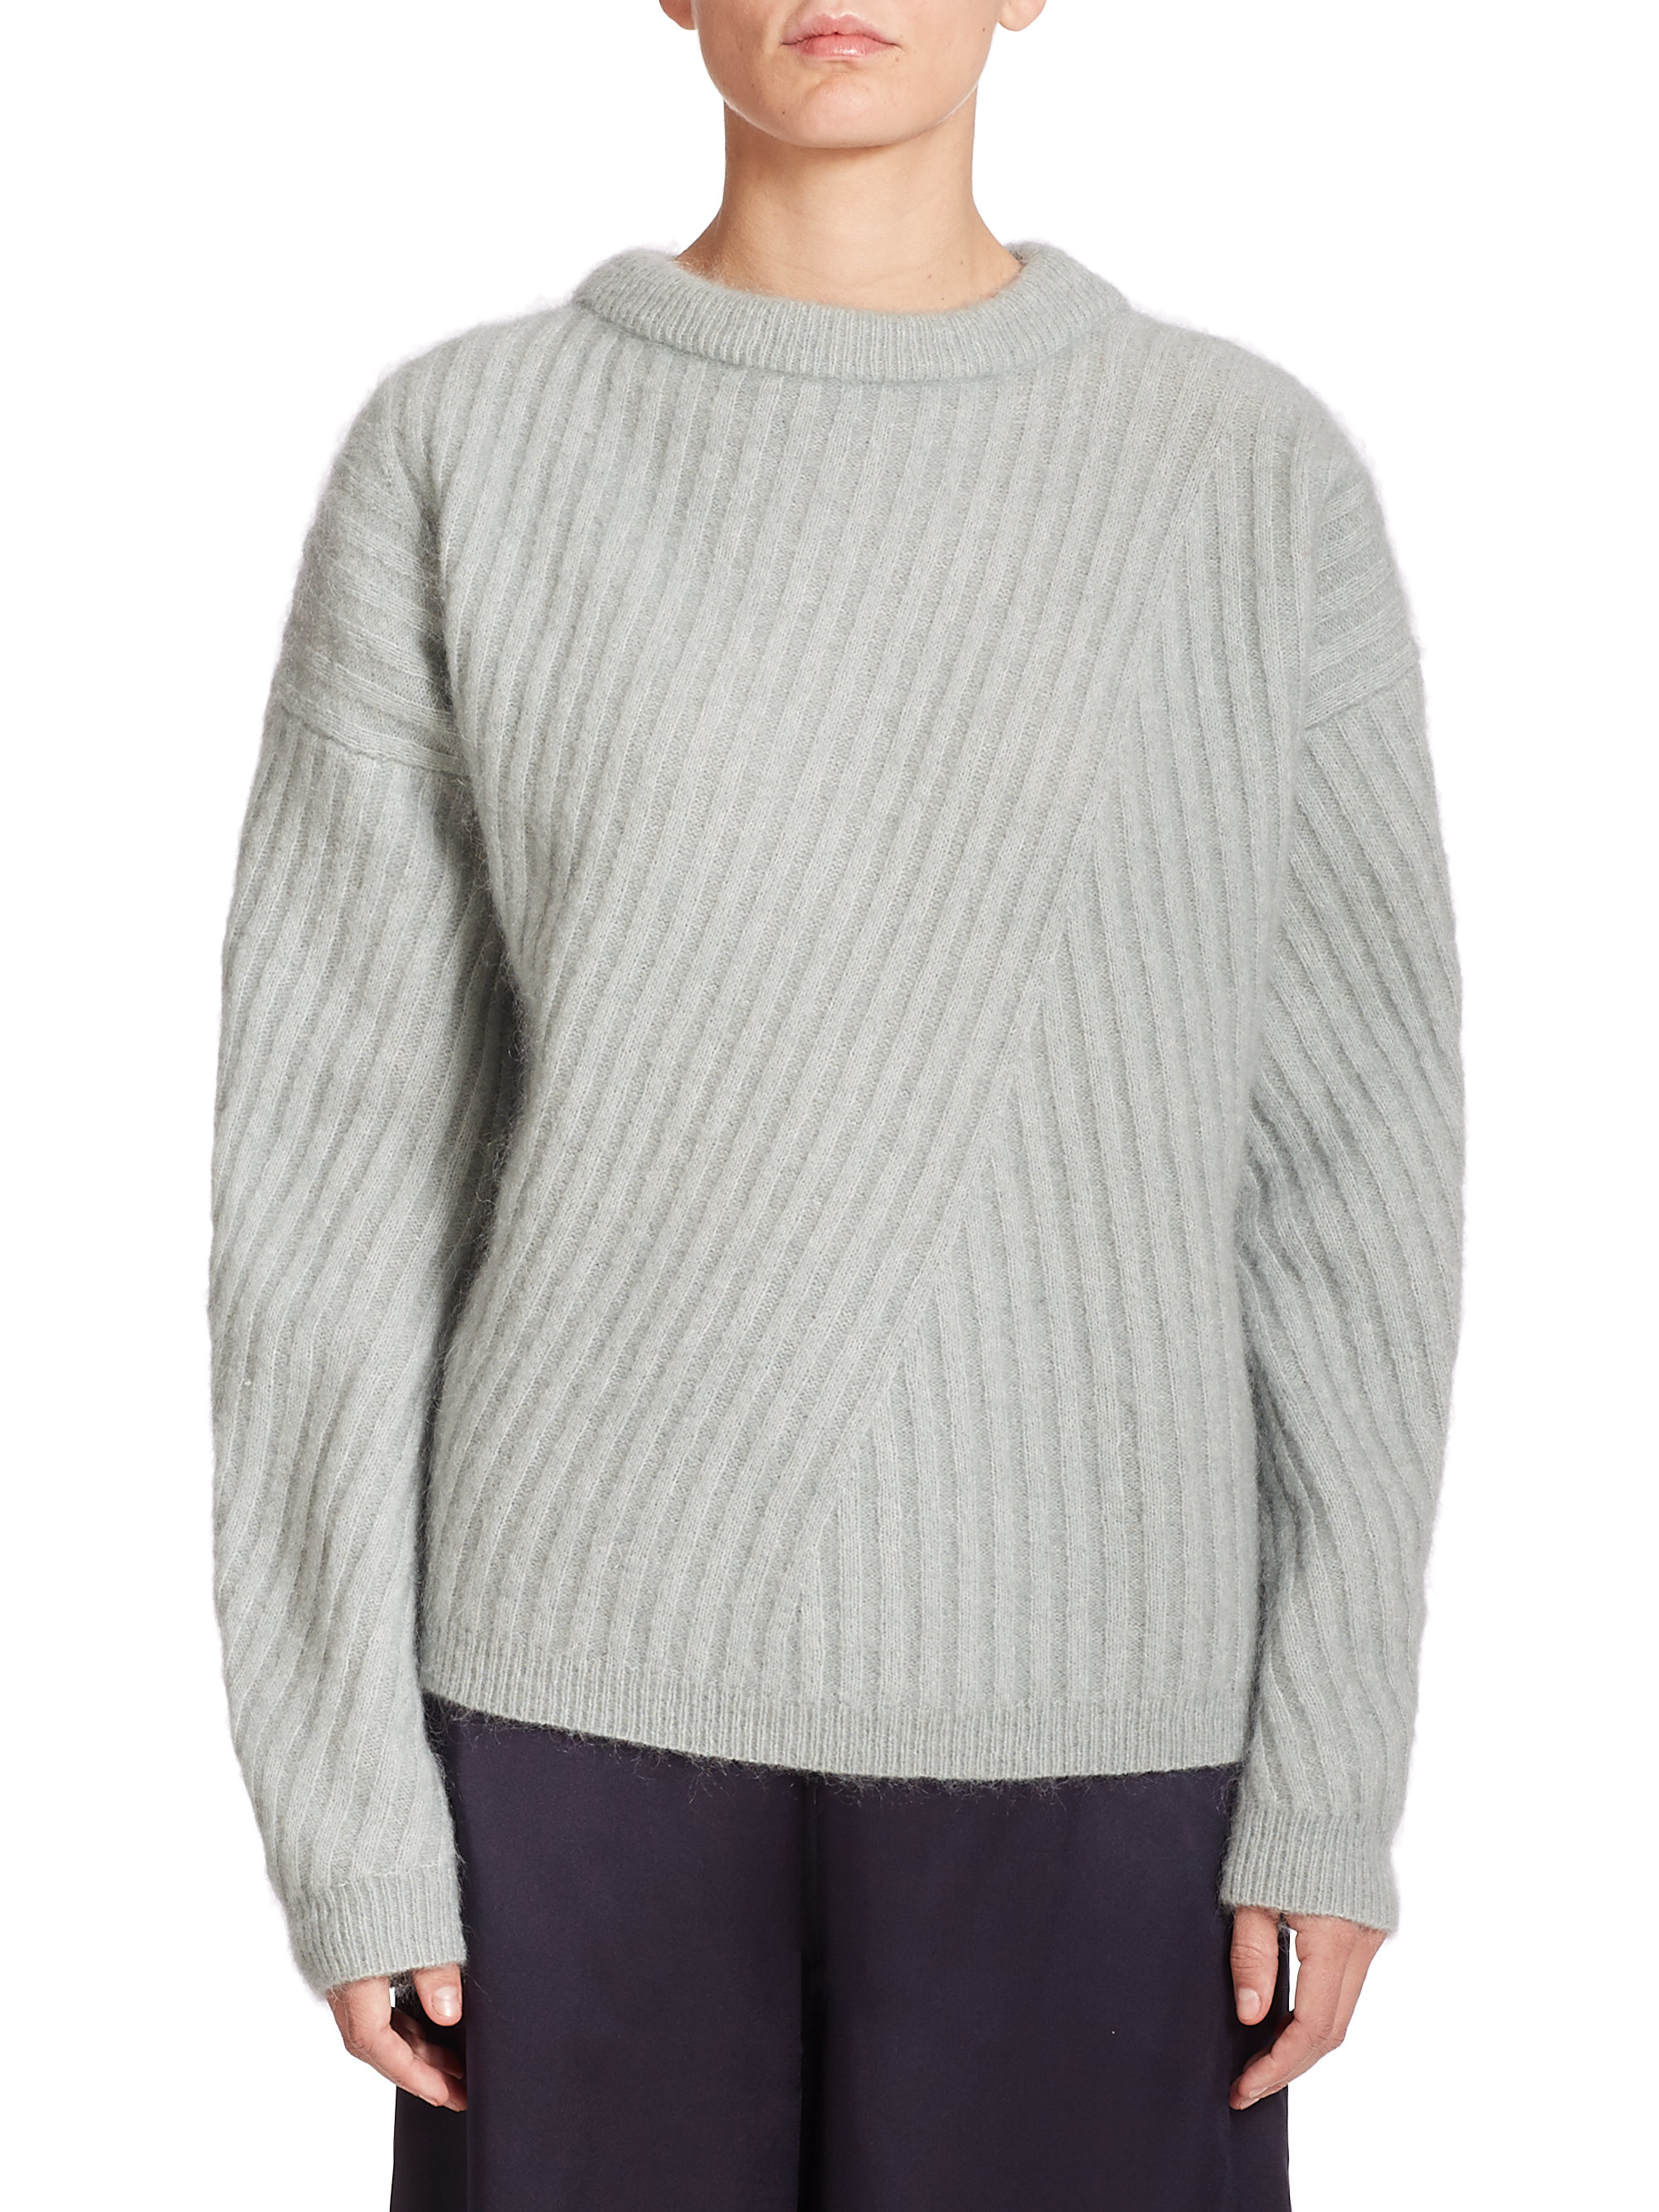 Acne studios Virdis Mohair Ribbed Sweater in Gray | Lyst